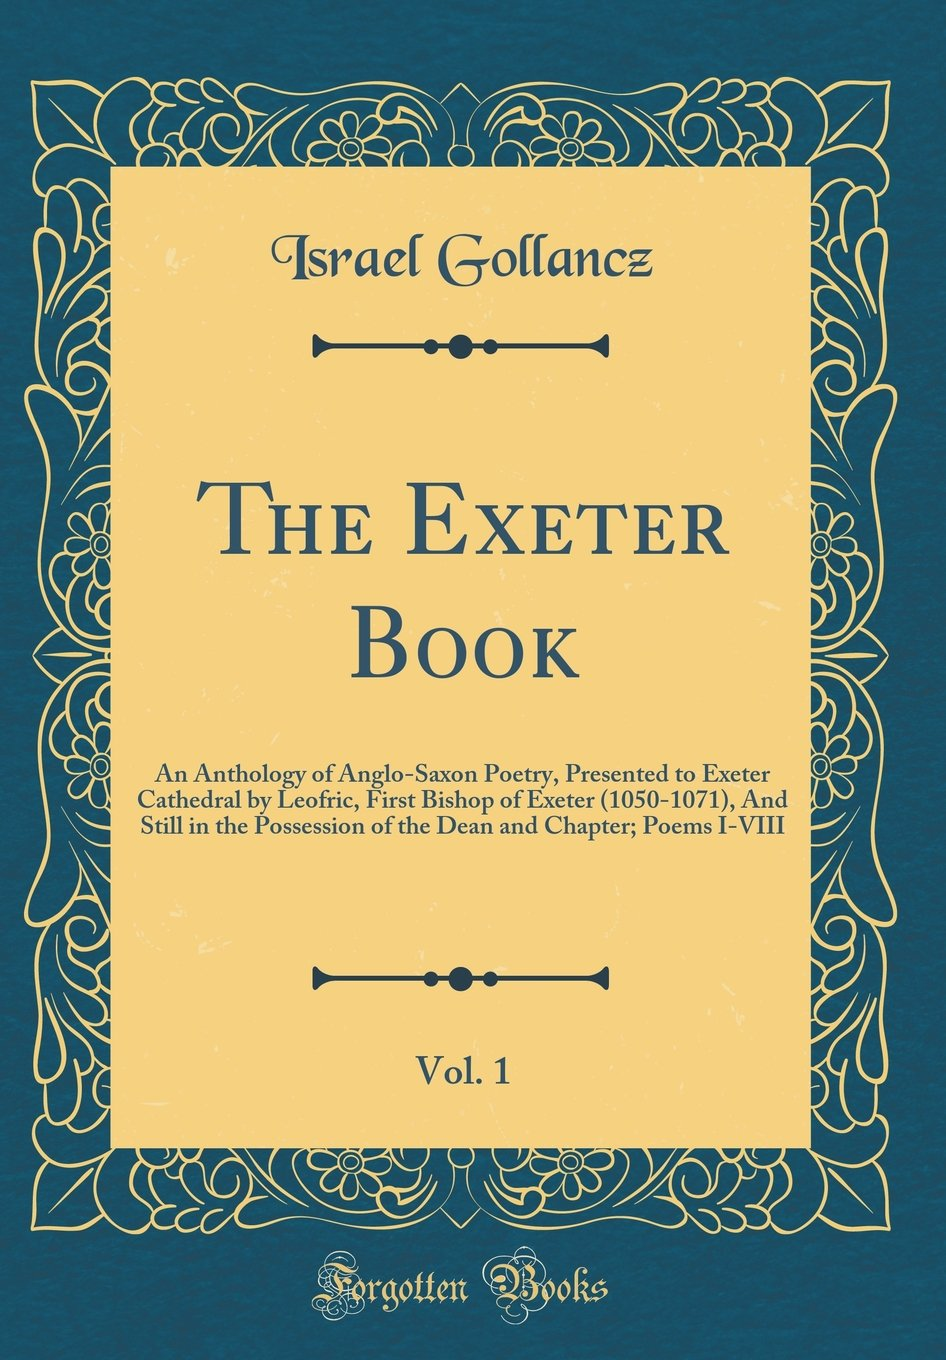 Download The Exeter Book, Vol. 1: An Anthology of Anglo-Saxon Poetry, Presented to Exeter Cathedral by Leofric, First Bishop of Exeter (1050-1071), And Still ... and Chapter; Poems I-VIII (Classic Reprint) pdf epub